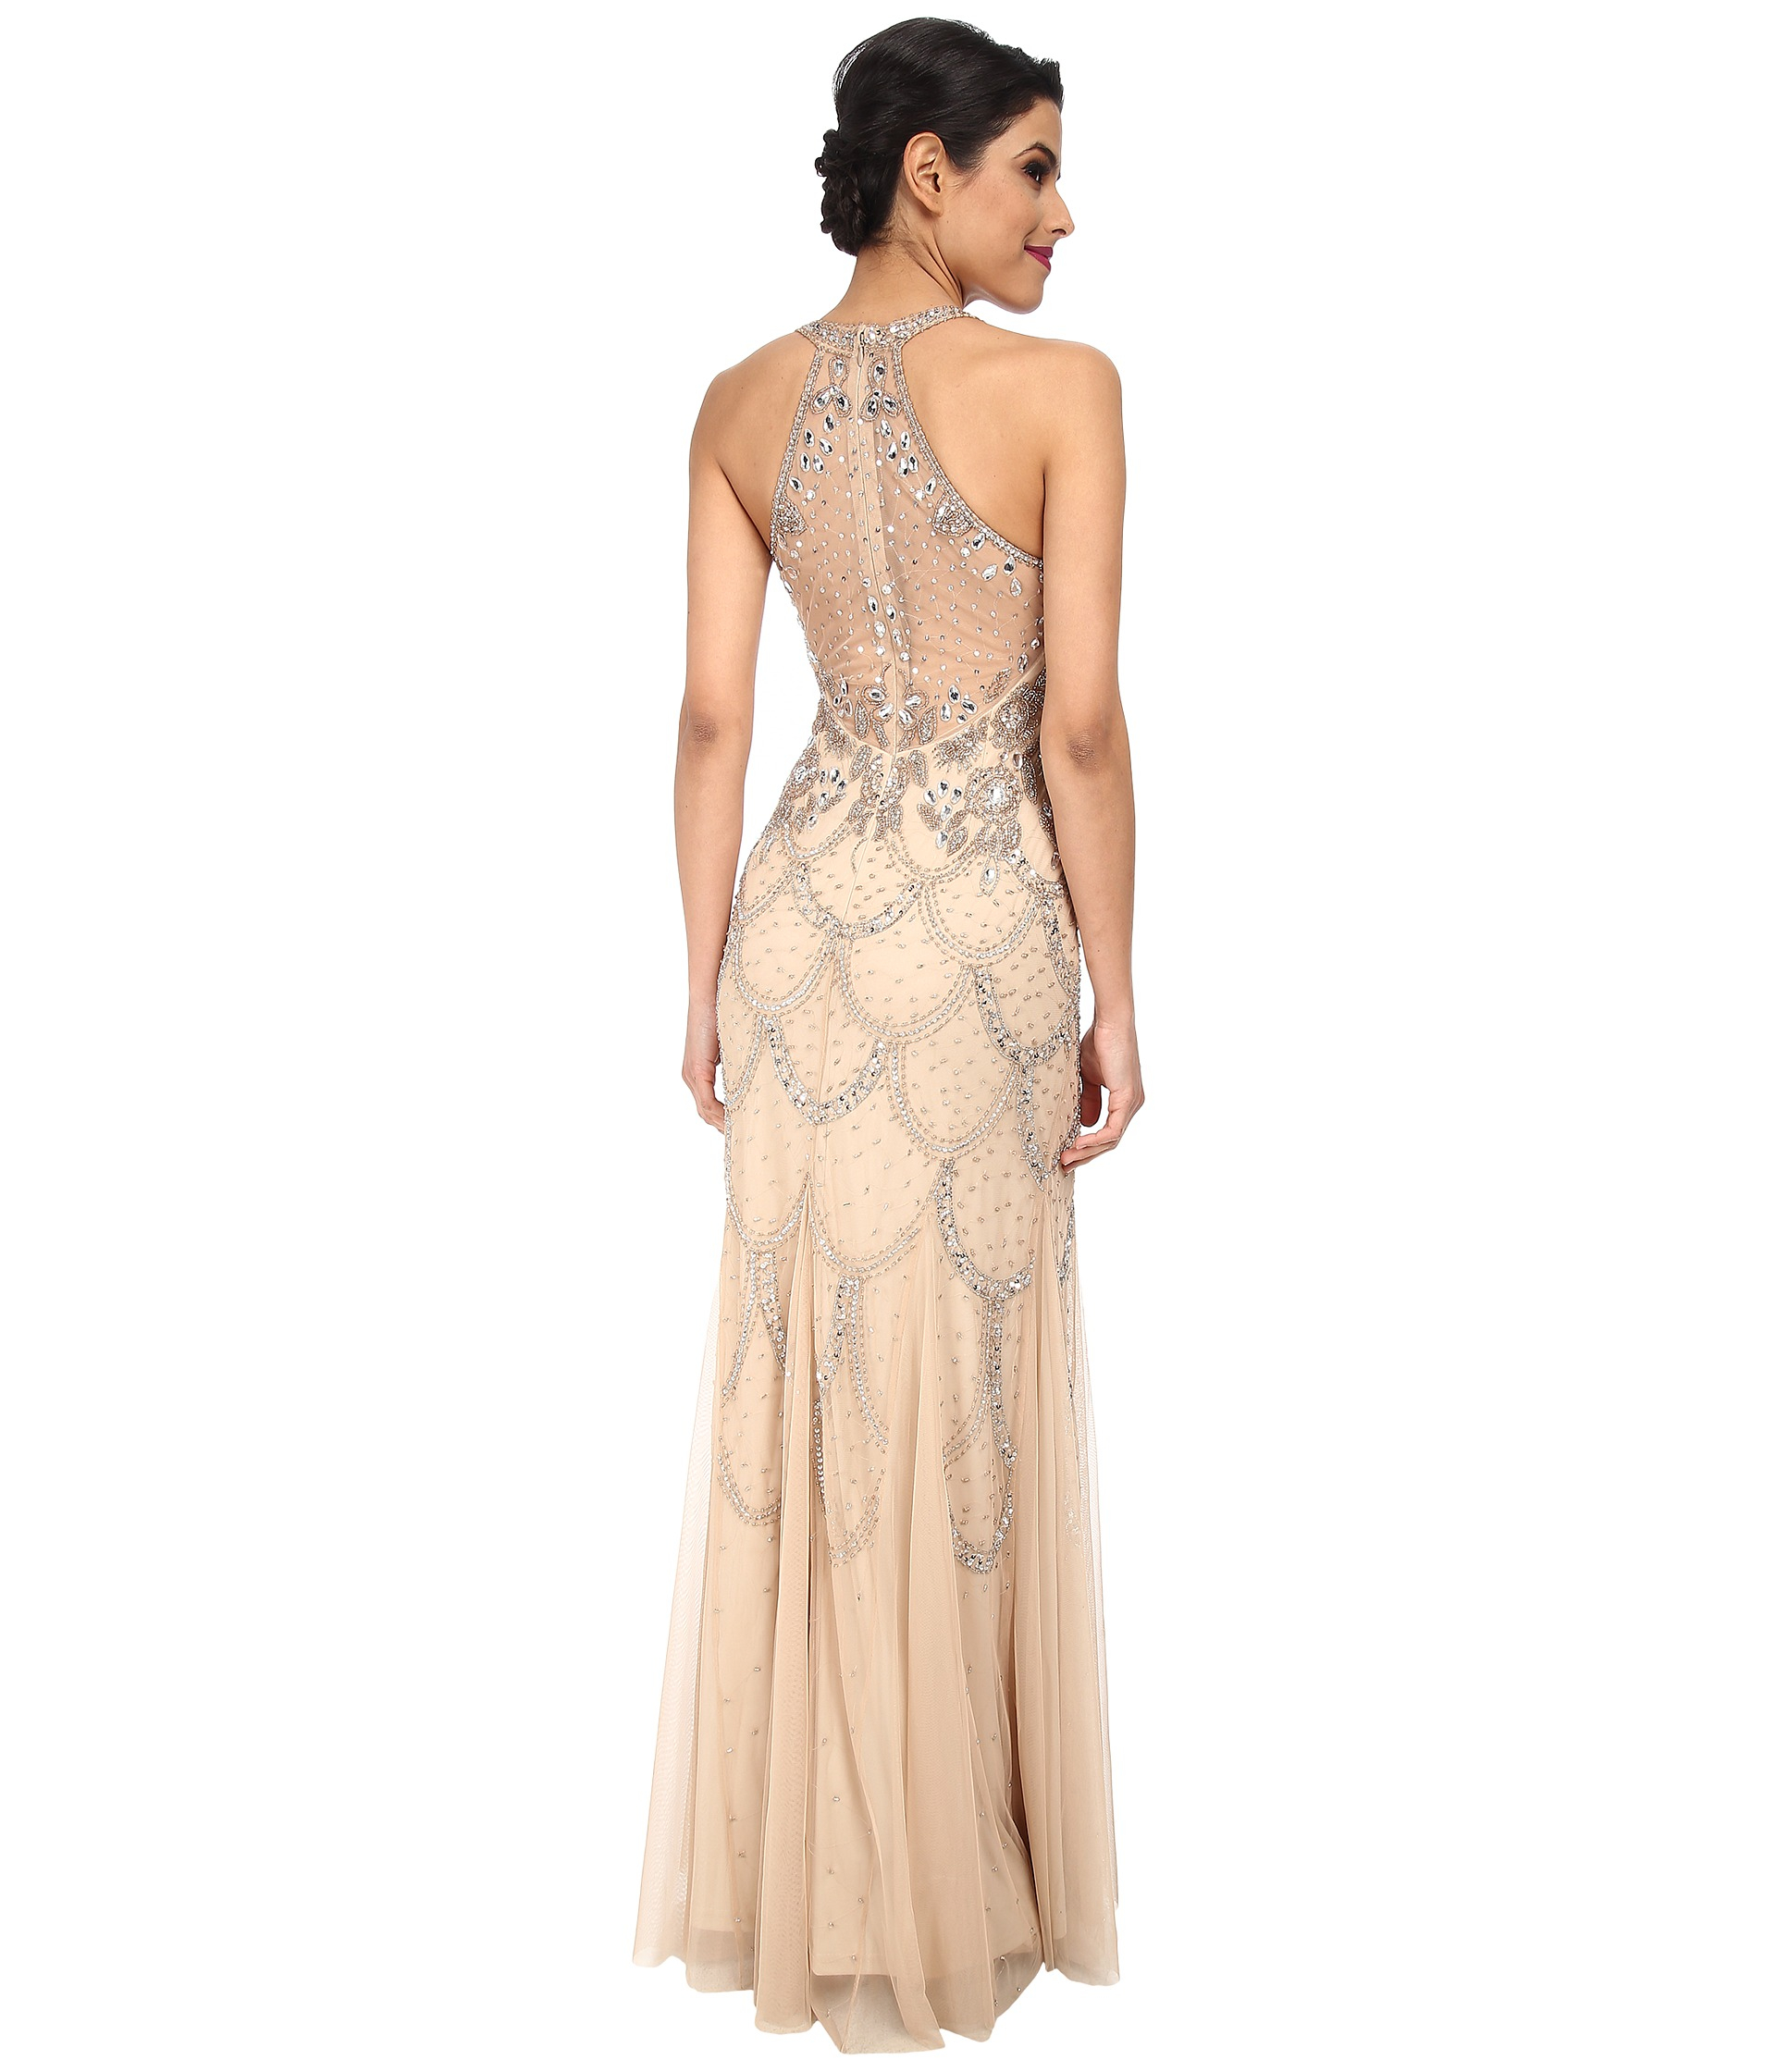 Adrianna papell Halter Fully Beaded Gown in Natural